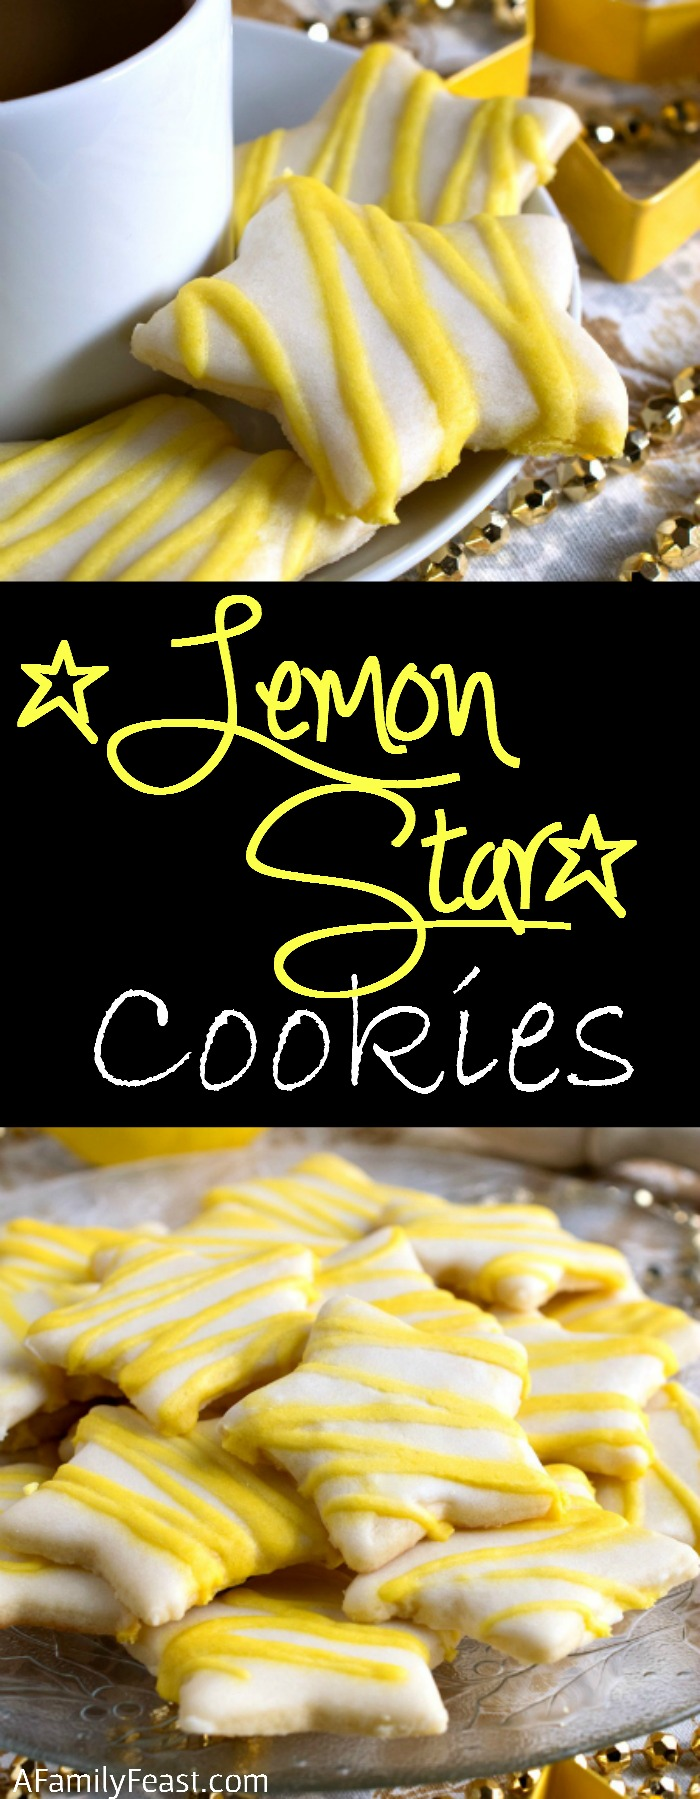 Lemon Star Cookies - Tender, sweet sugar cookies topped with a lemon icing. Absolutely delicious!